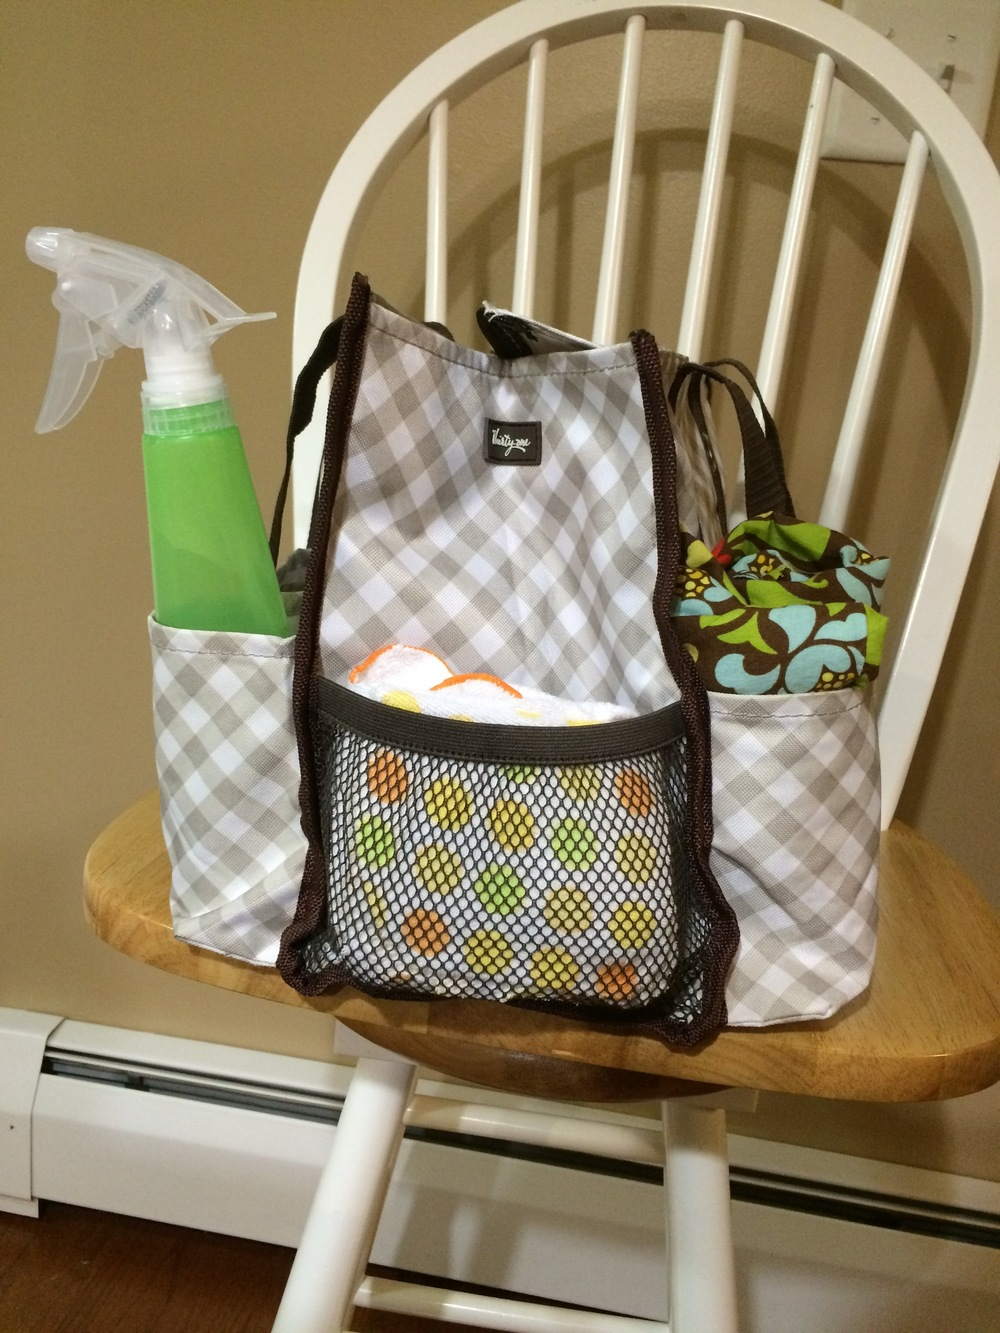 Diapering husband for bed - In Each Diaper Bag 6 Diapers 2 Nap Diapers 8 10 Wipes Spray Bottle 2 Wet Bags Tylenol A Back Up Outfit Including Socks Because I Have A Fear Of One